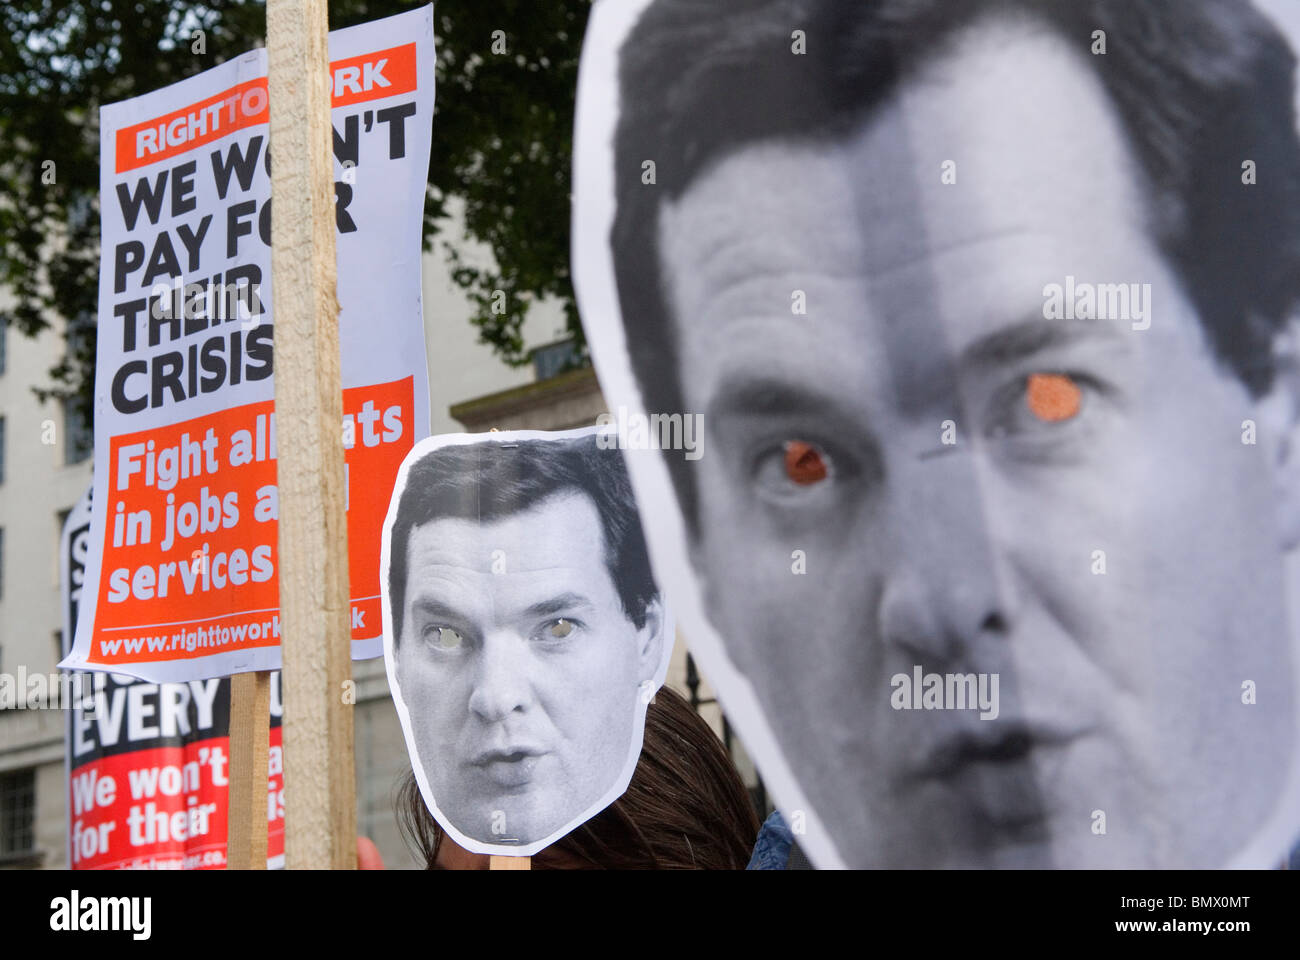 George Osborne protest demo against proposed Budget Day. Coalition Government Demonstration London UK - Stock Image